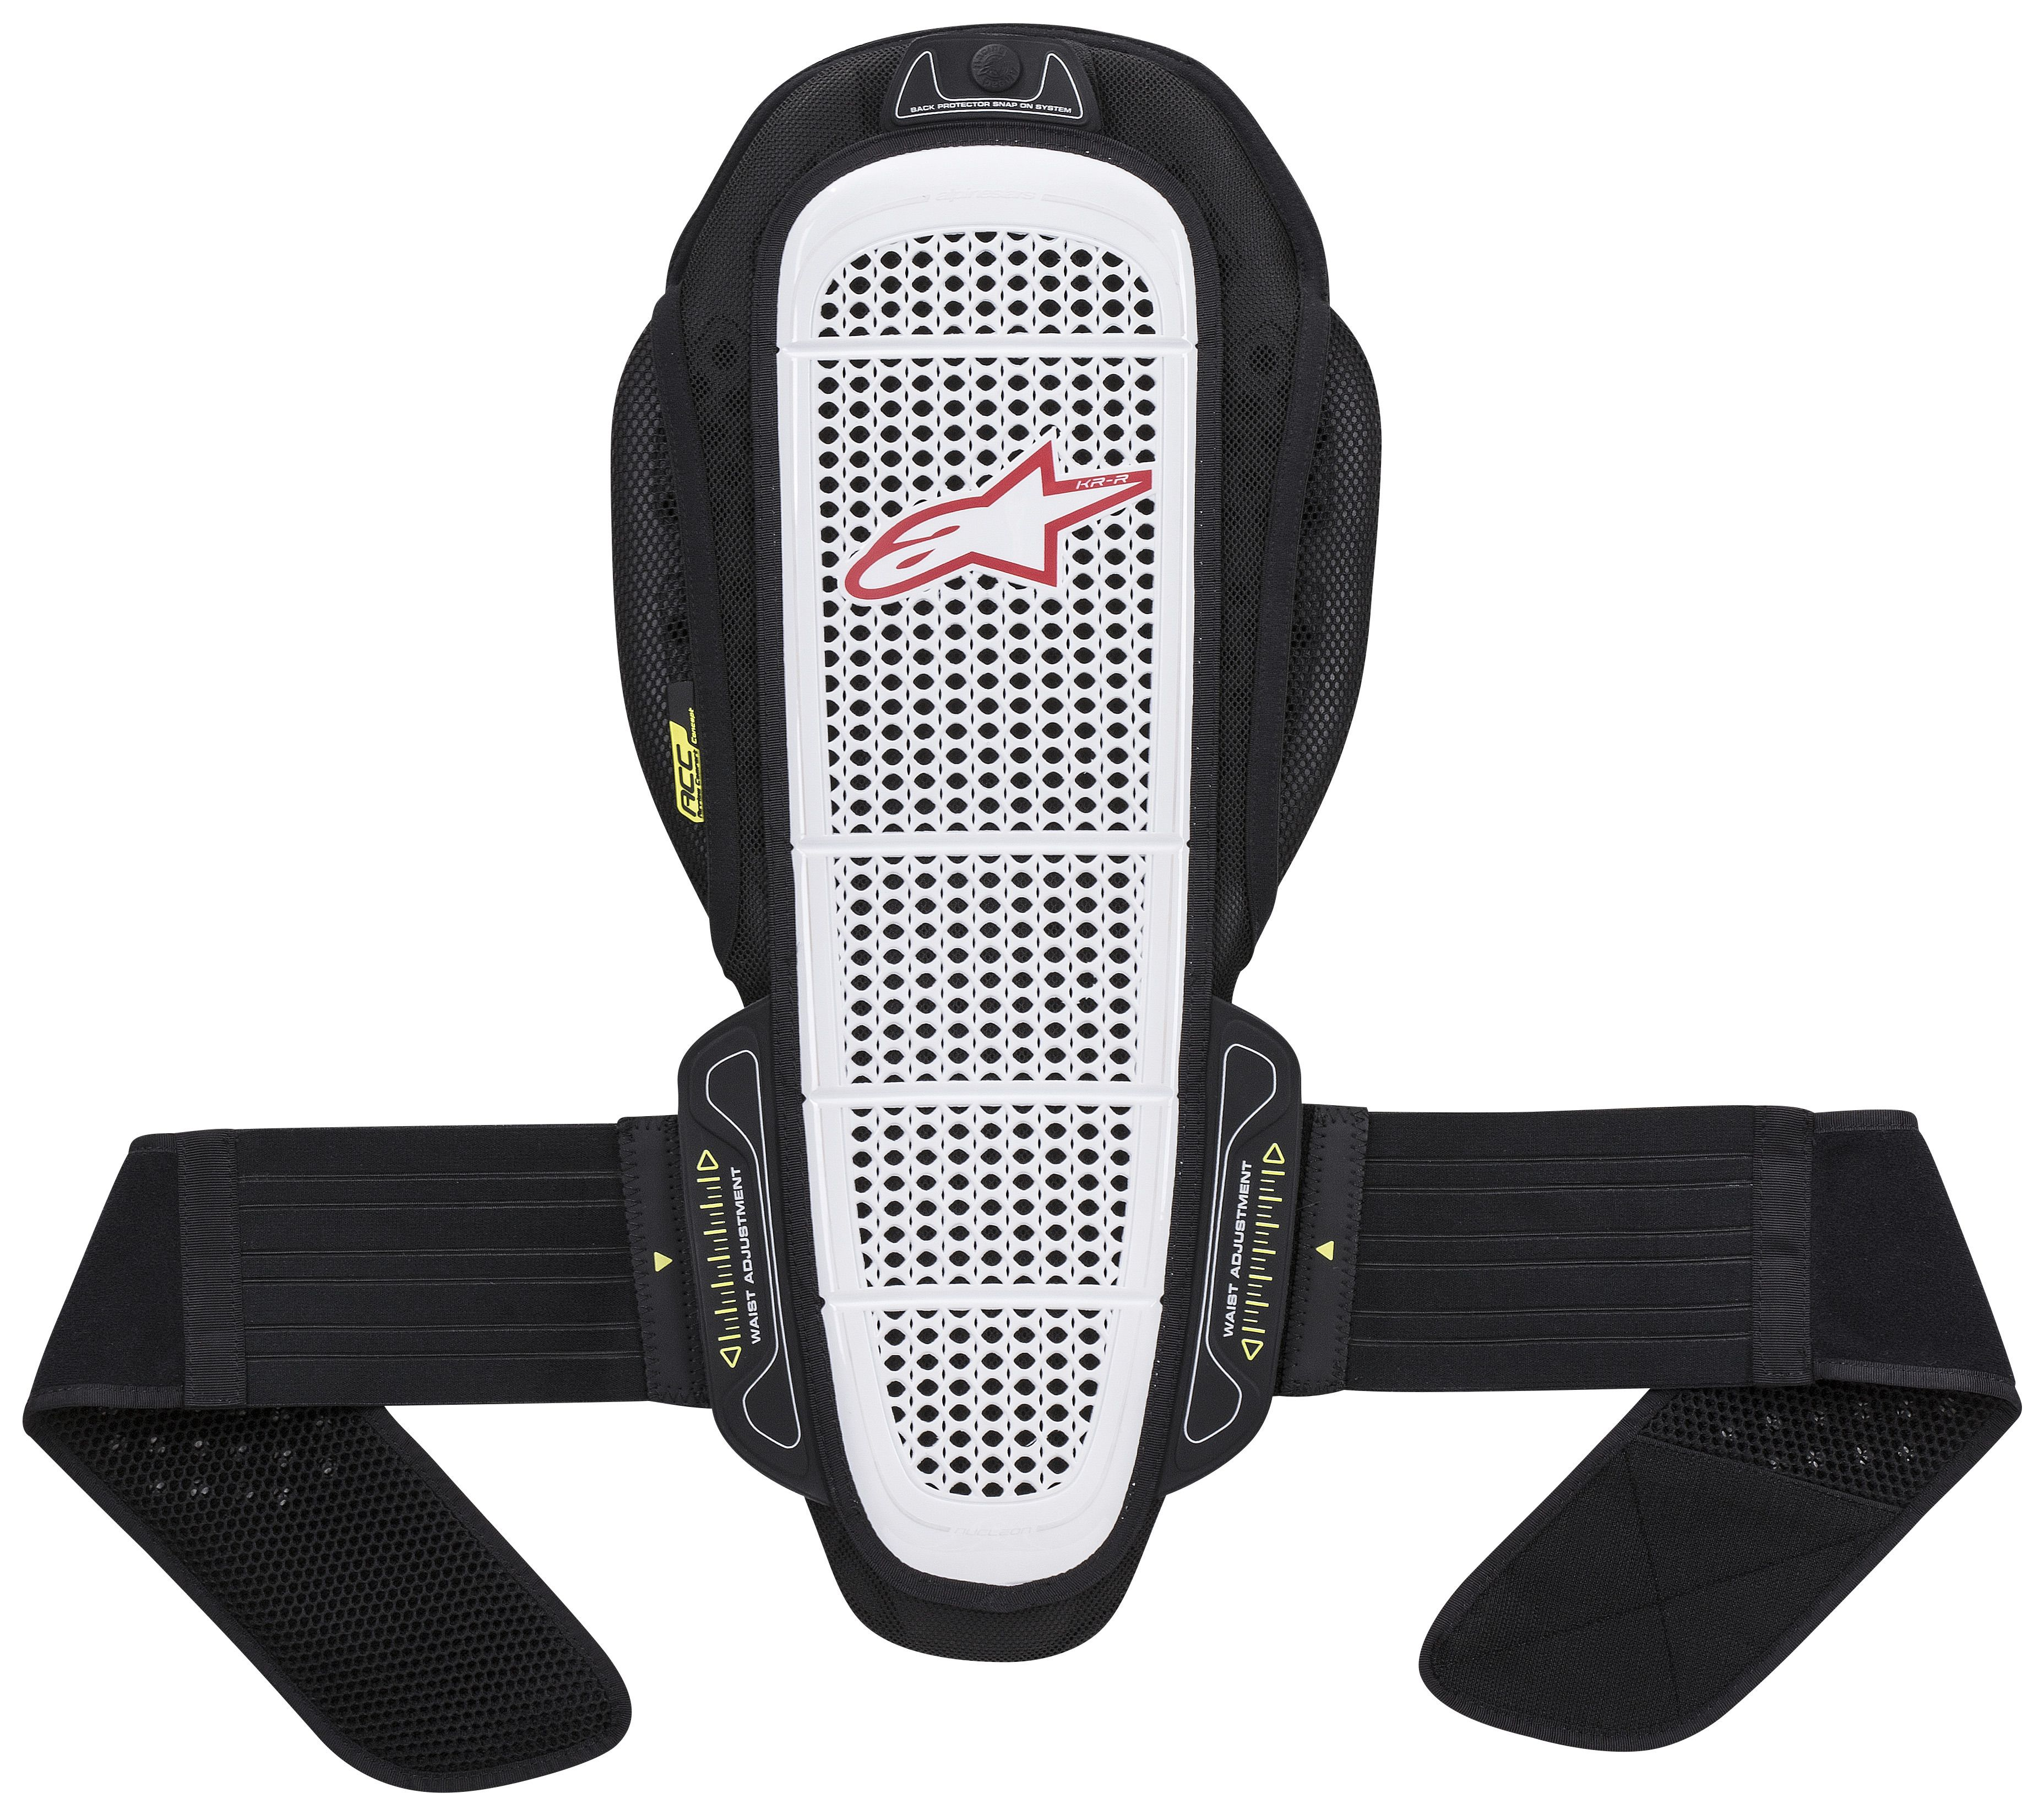 Alpinestars Nucleon Kr R Race Back Protector Revzilla Of Snapon Perfect For Small To Medium Cleaning Jobs The Snap